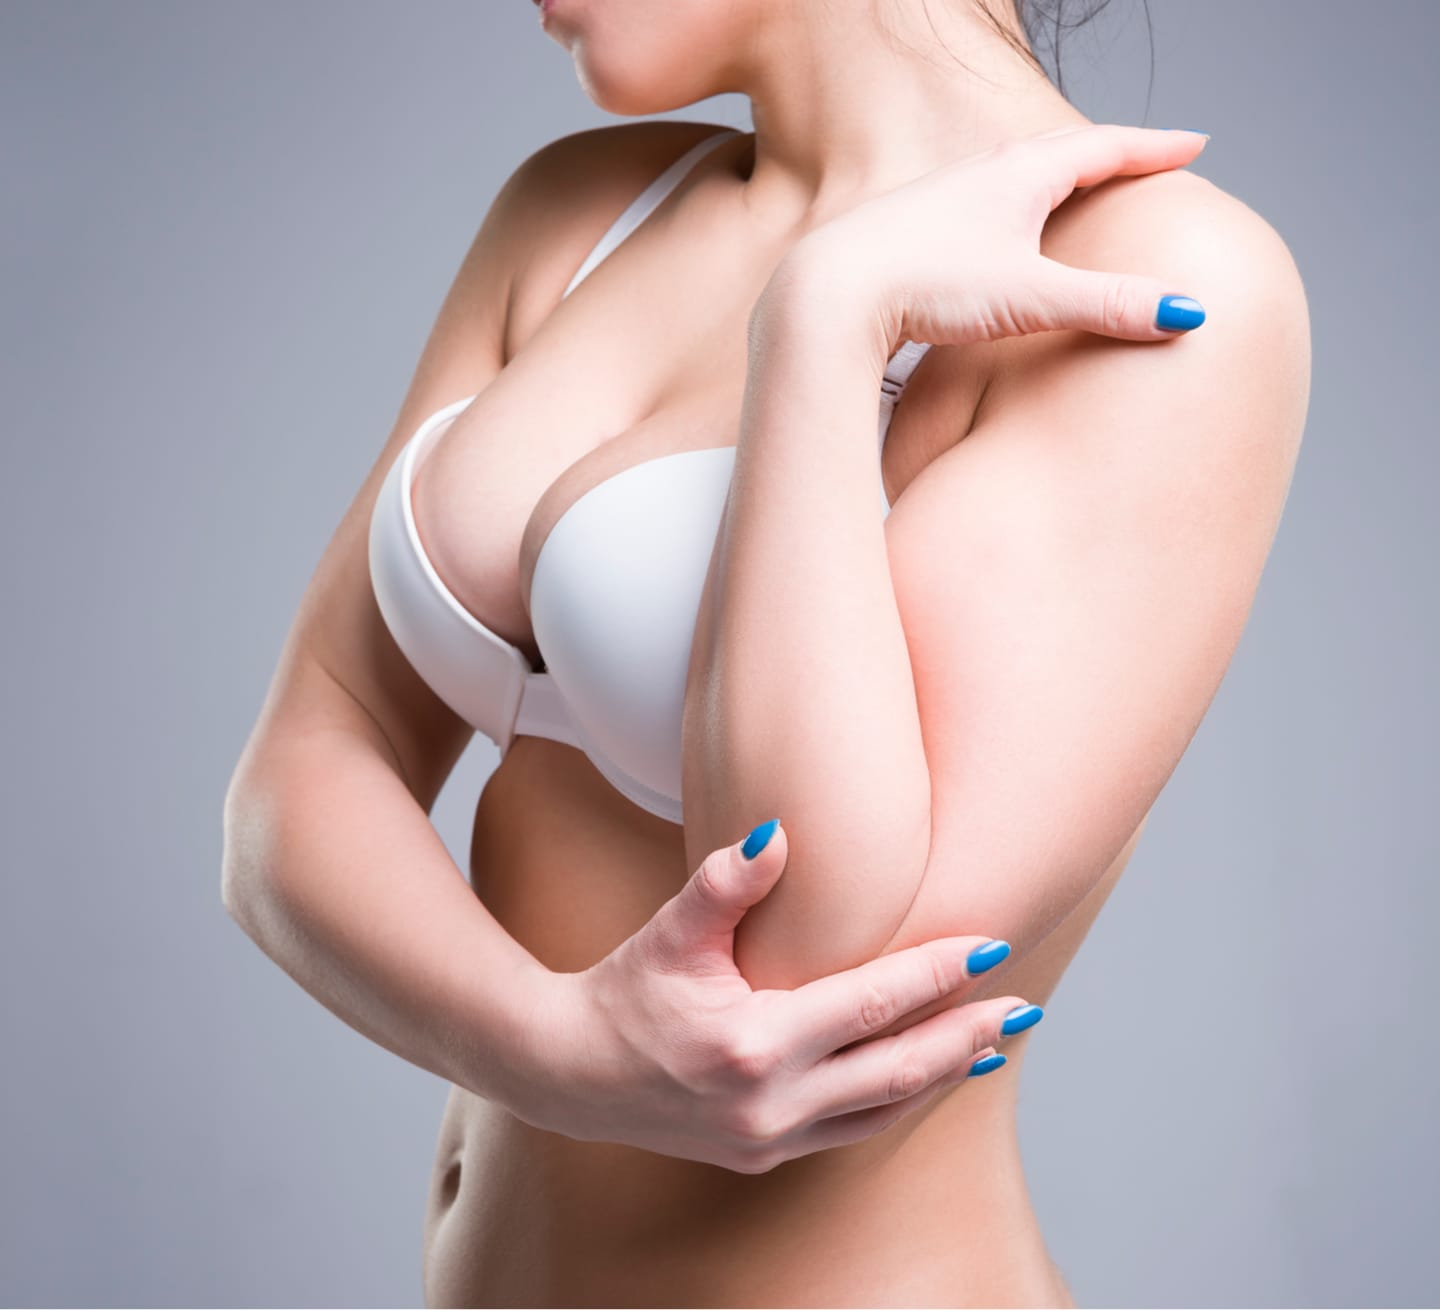 stock photo of woman in a white bra